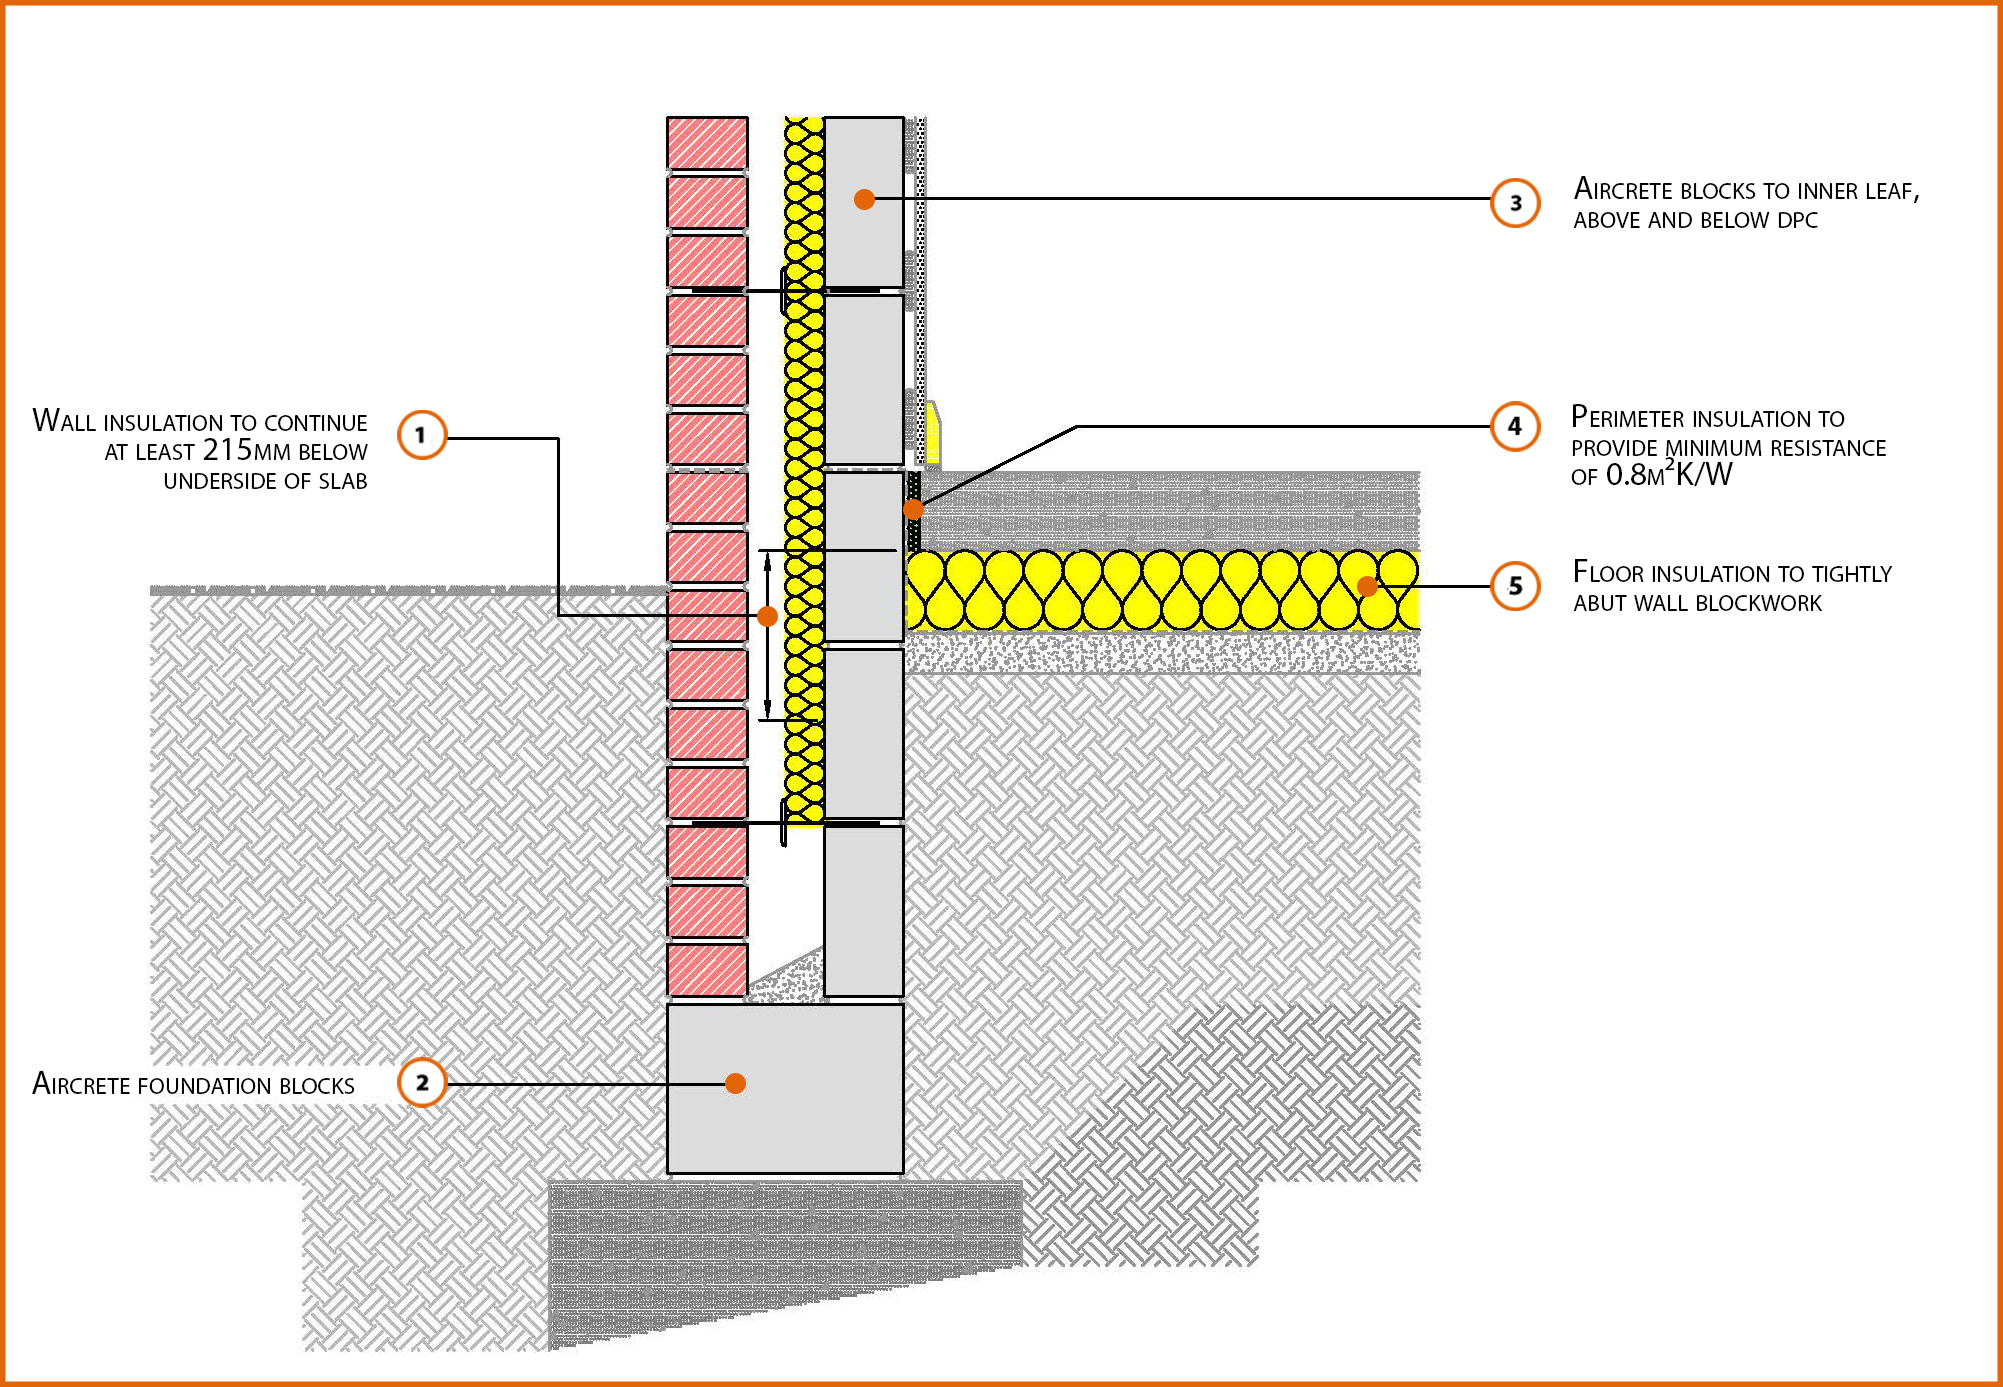 E5mcpf27 Concrete Ground Bearing Floor Insulation Below